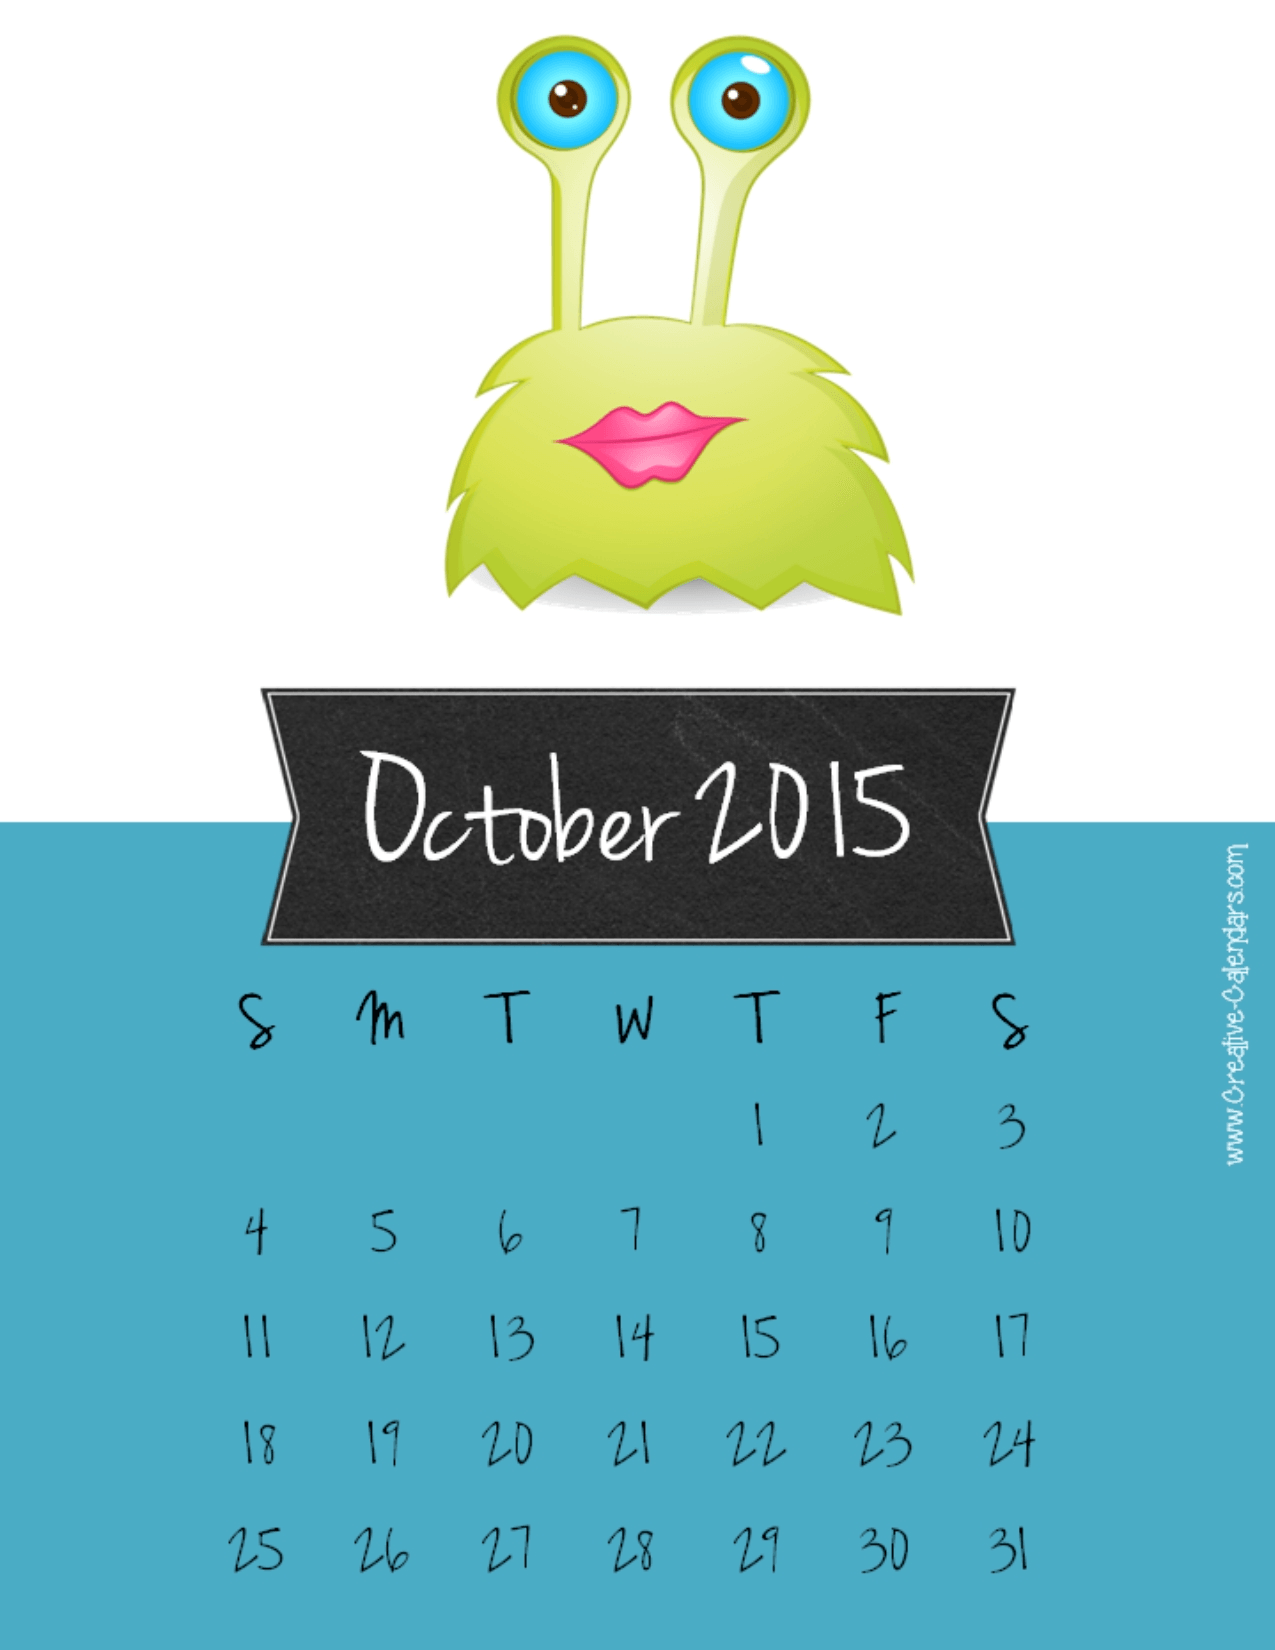 Clipart calendar october 2015 image free stock Cute october 2015 clipart - ClipartFest image free stock